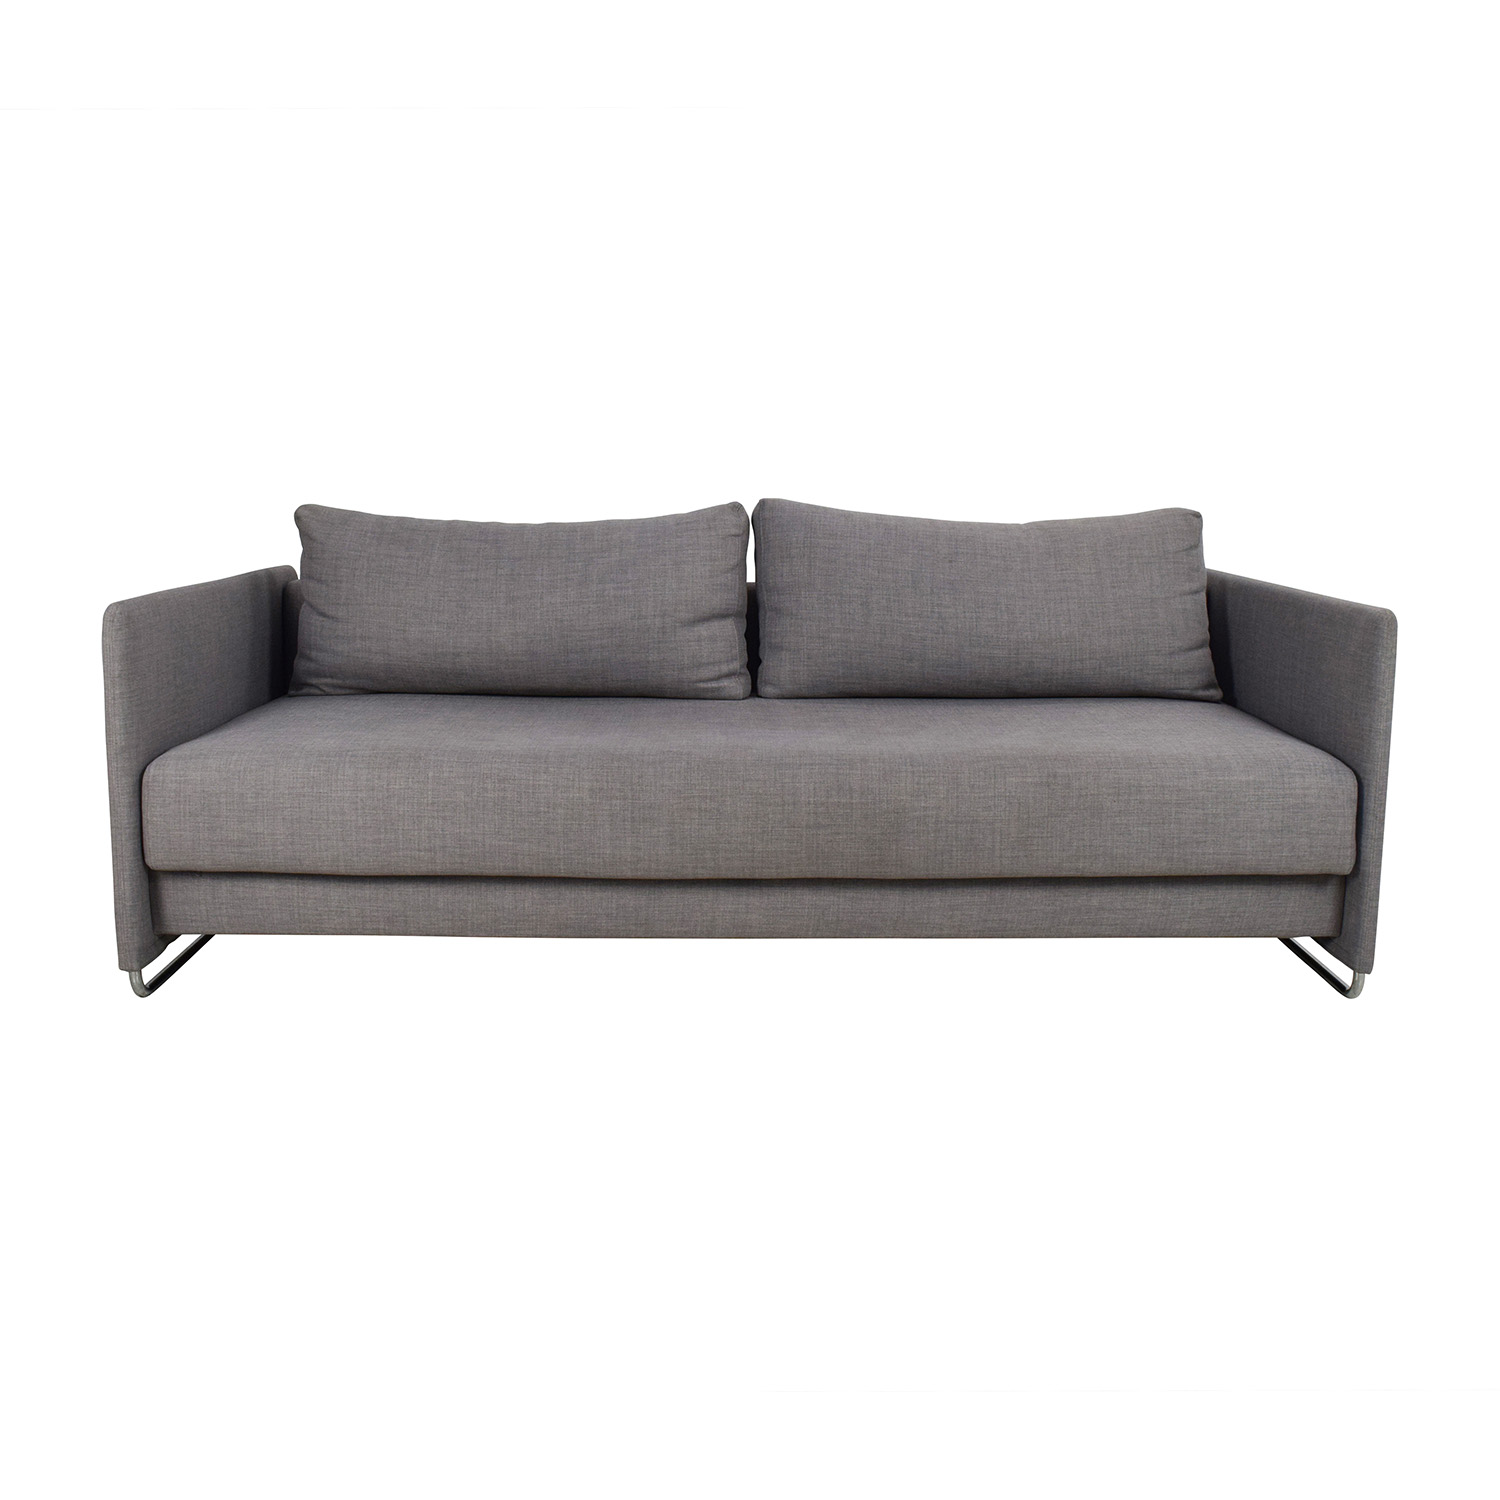 CB2 CB2 Tandom Grey Sleeper Sofa